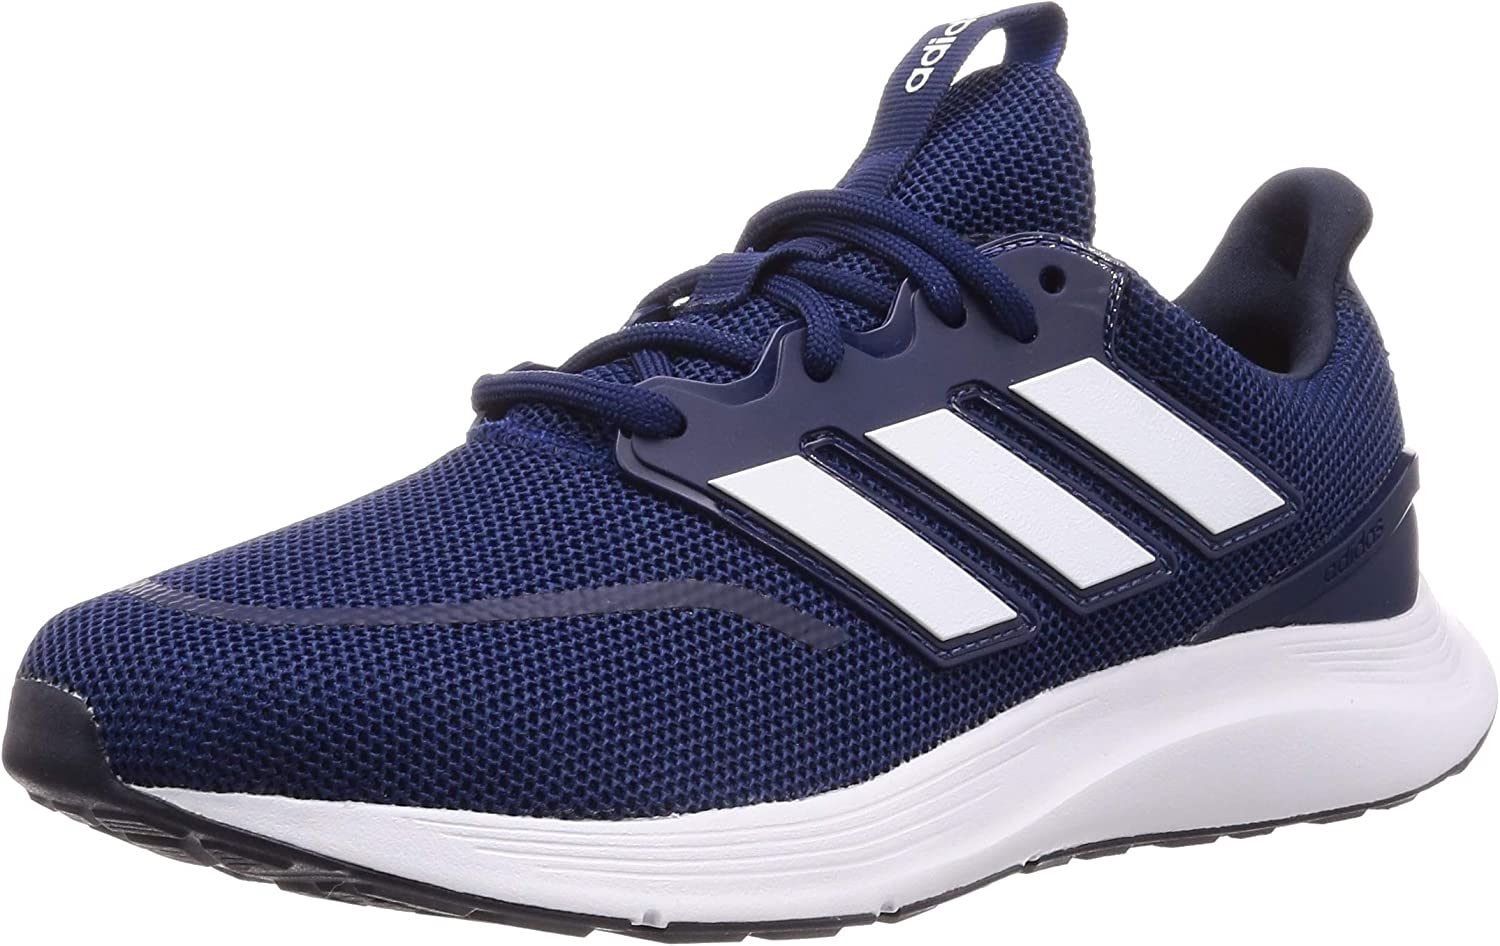 adidas Max 56% OFF Complete Free Shipping Men's Energyfalcon Adiwear Running Shoes